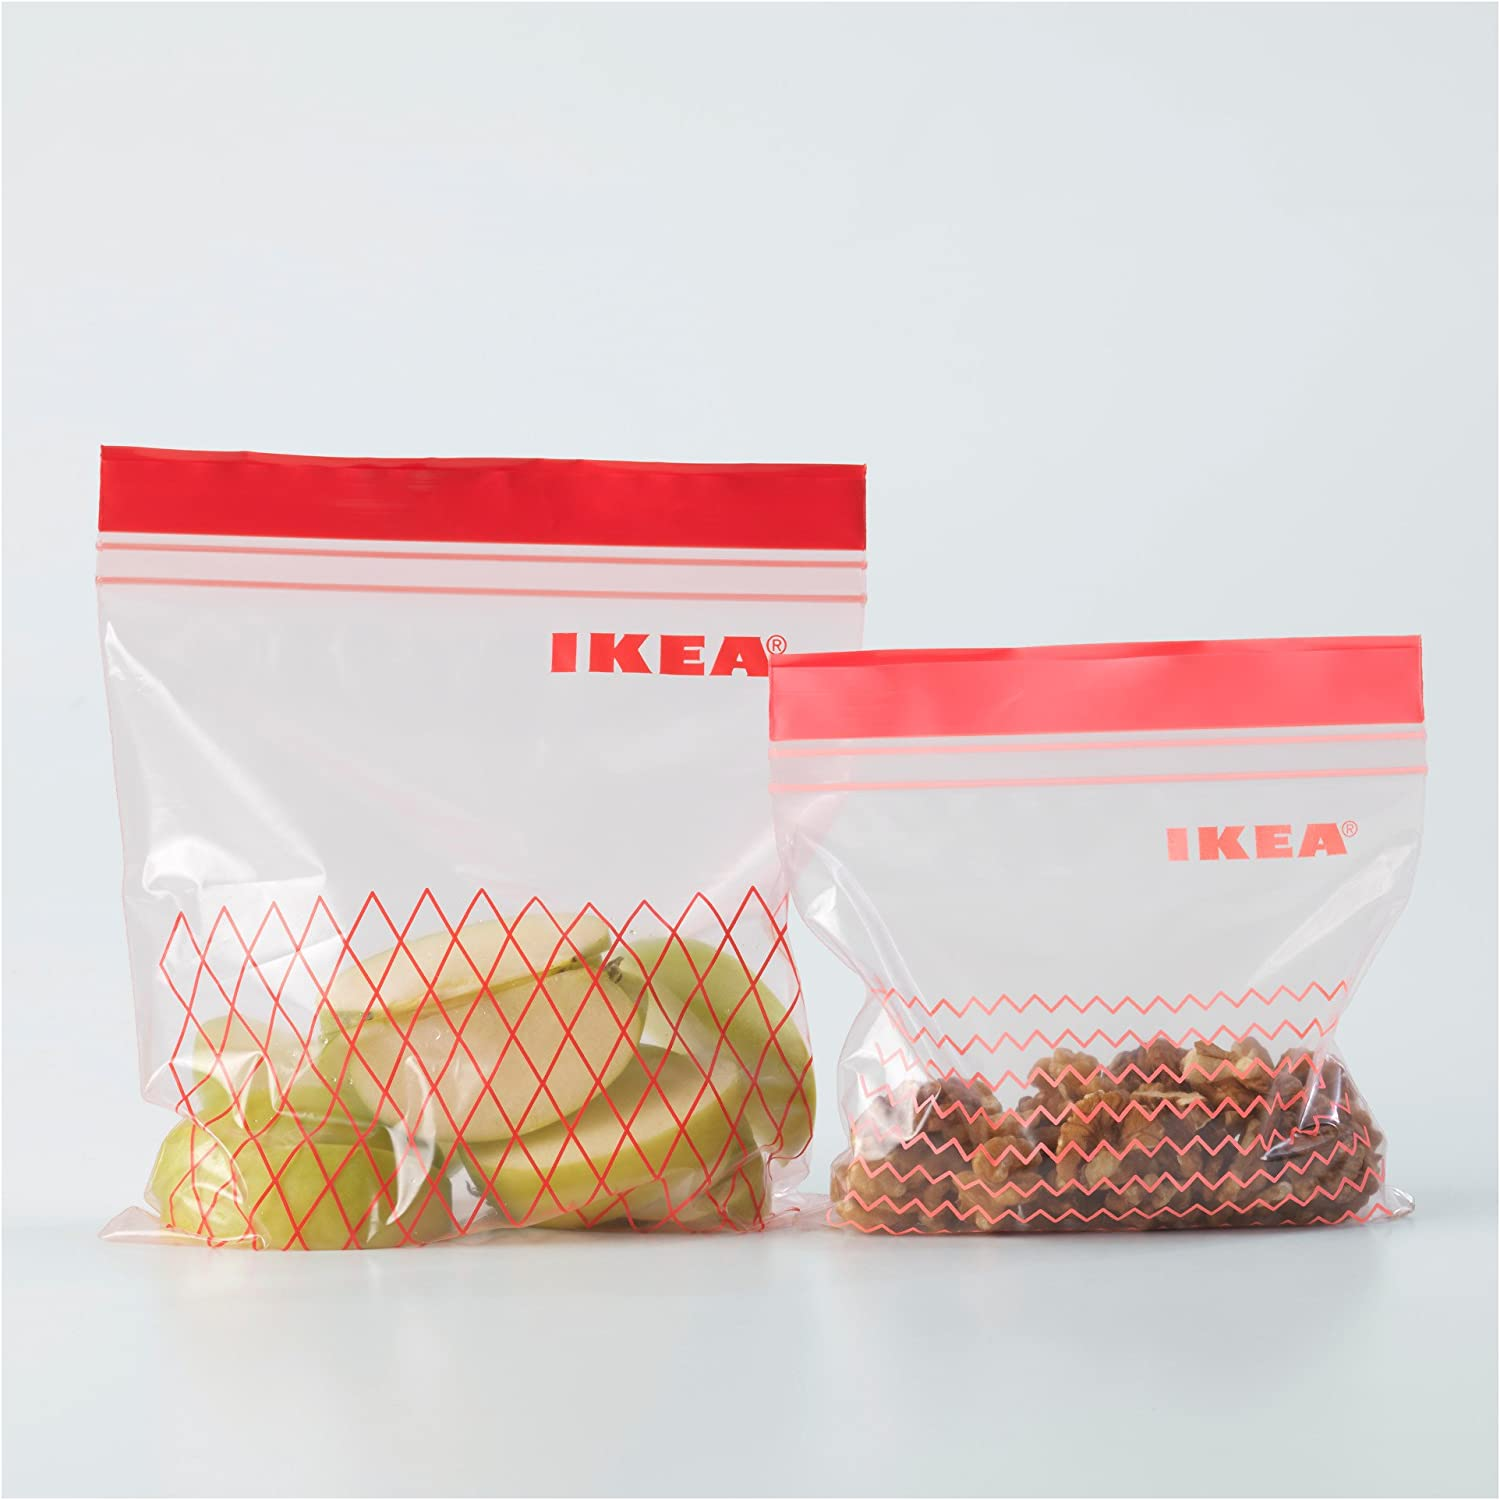 and 30 Bags 0.4 l 1 l 3 x ISTAD Plastic Bag Red Pack of 60 Can be Used Over and Over Again Since it can be re-Sealed. Comprises: 30 Bags